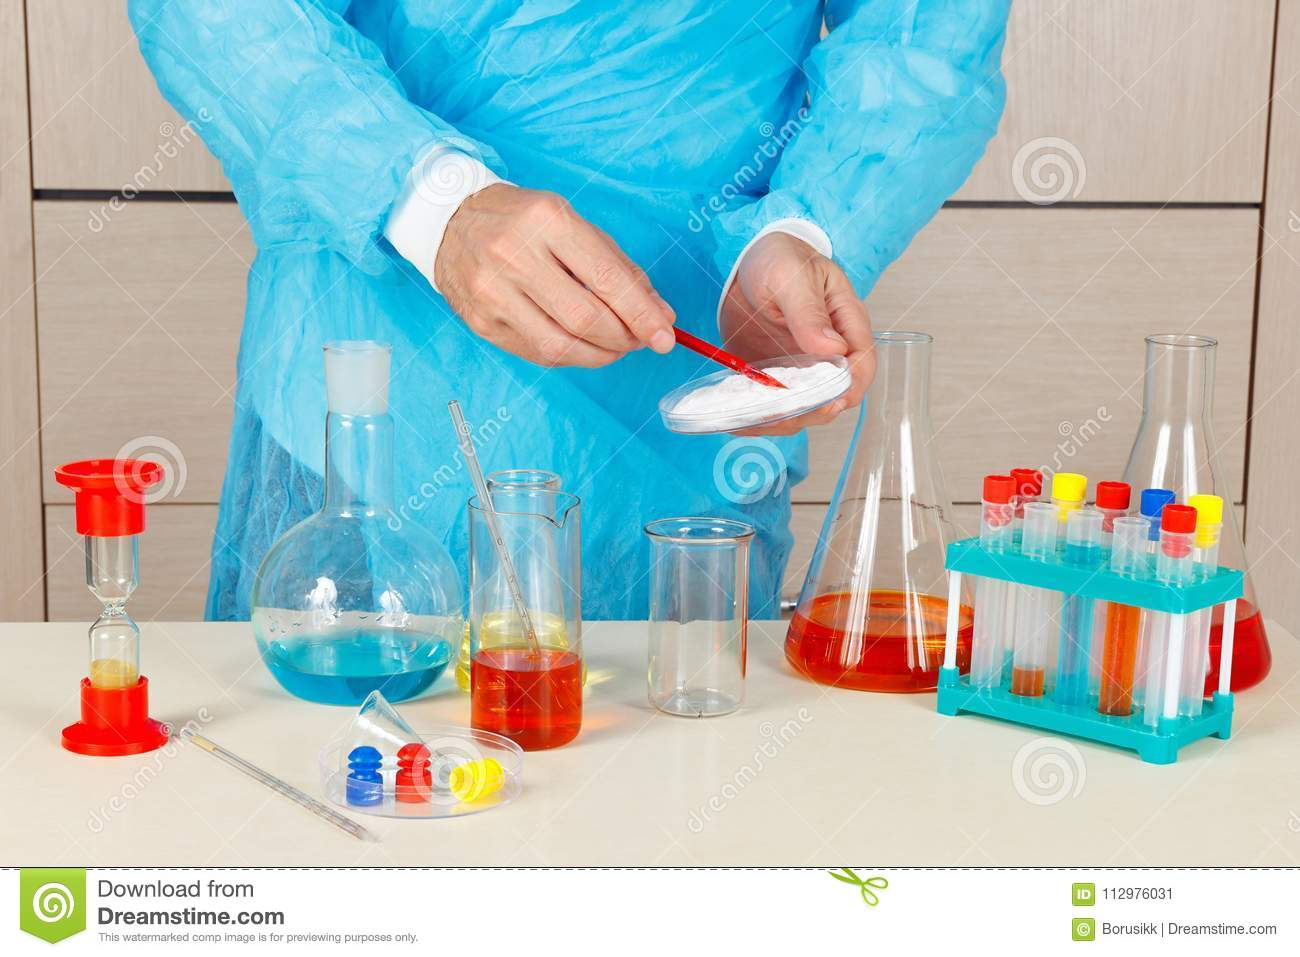 Chemist doing chemical experiments in laboratory